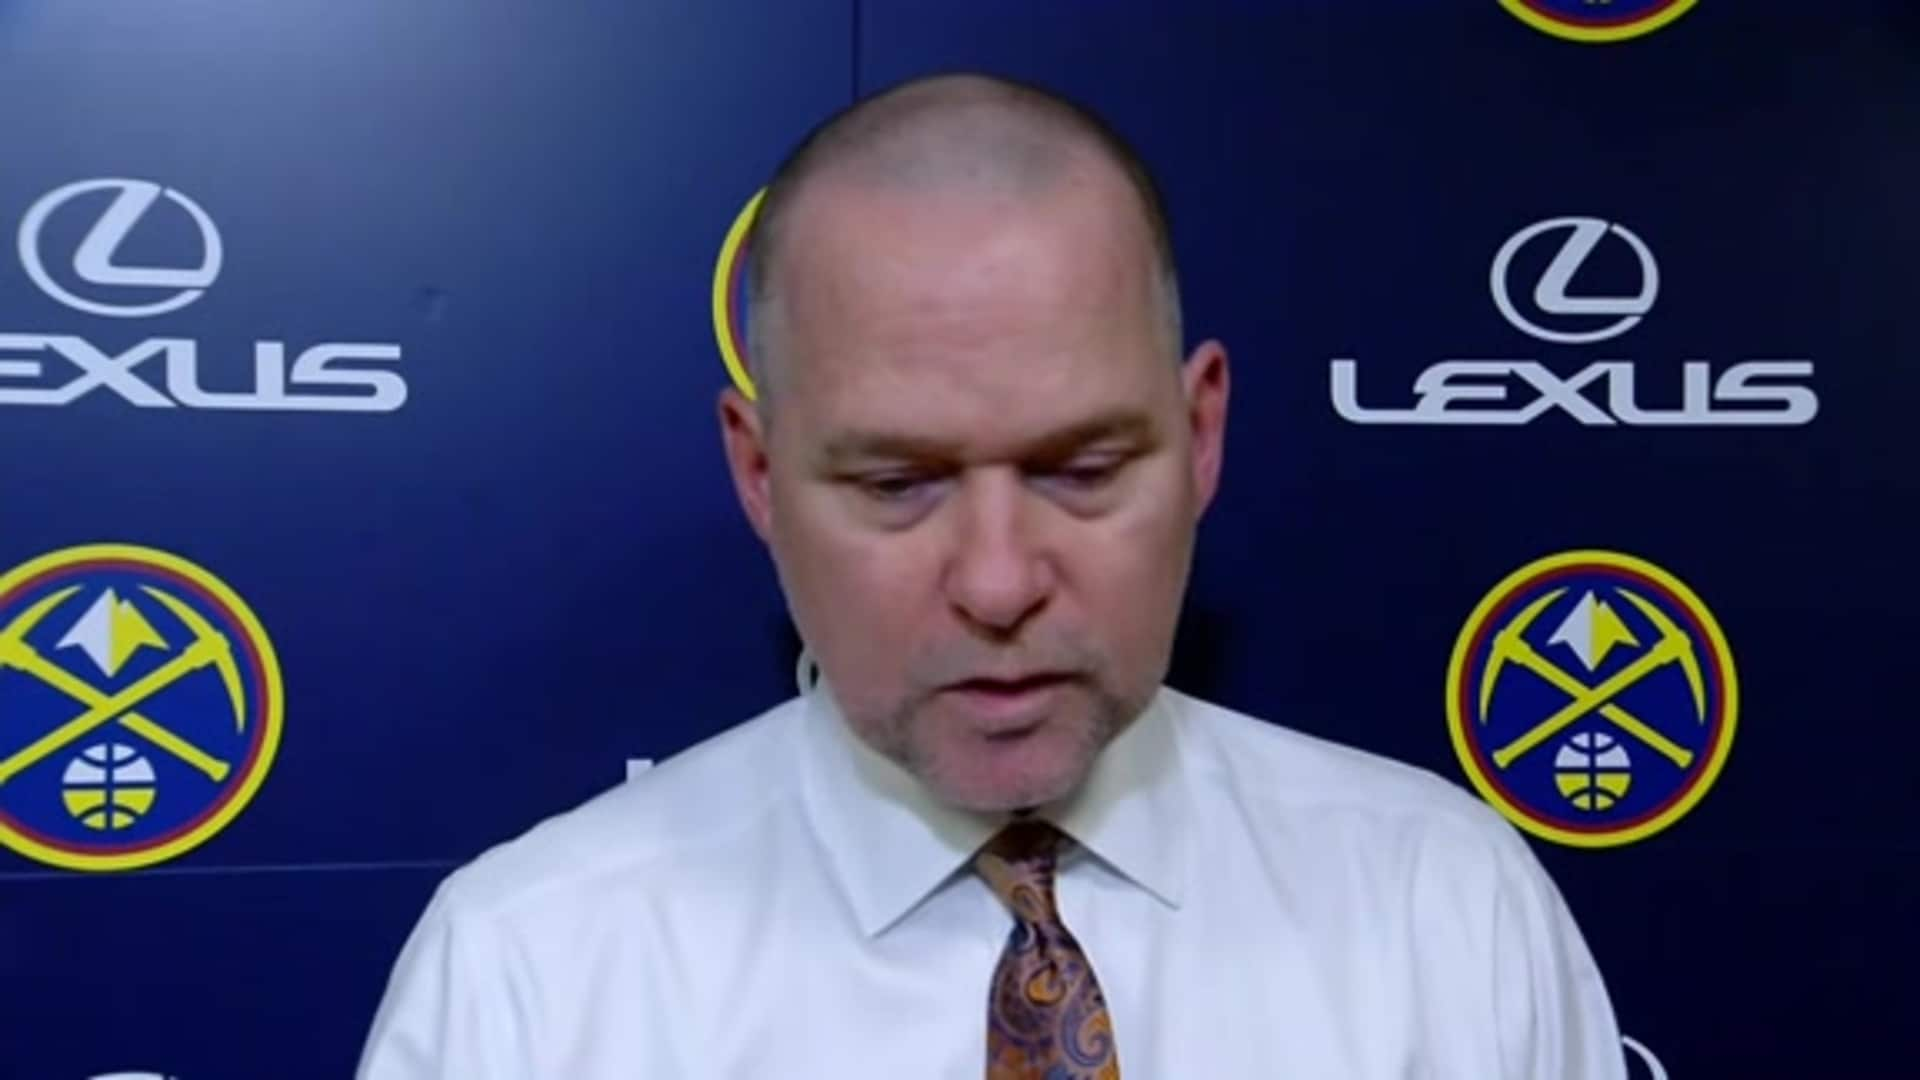 Nuggets vs. Cavaliers: Michael Malone postgame interview